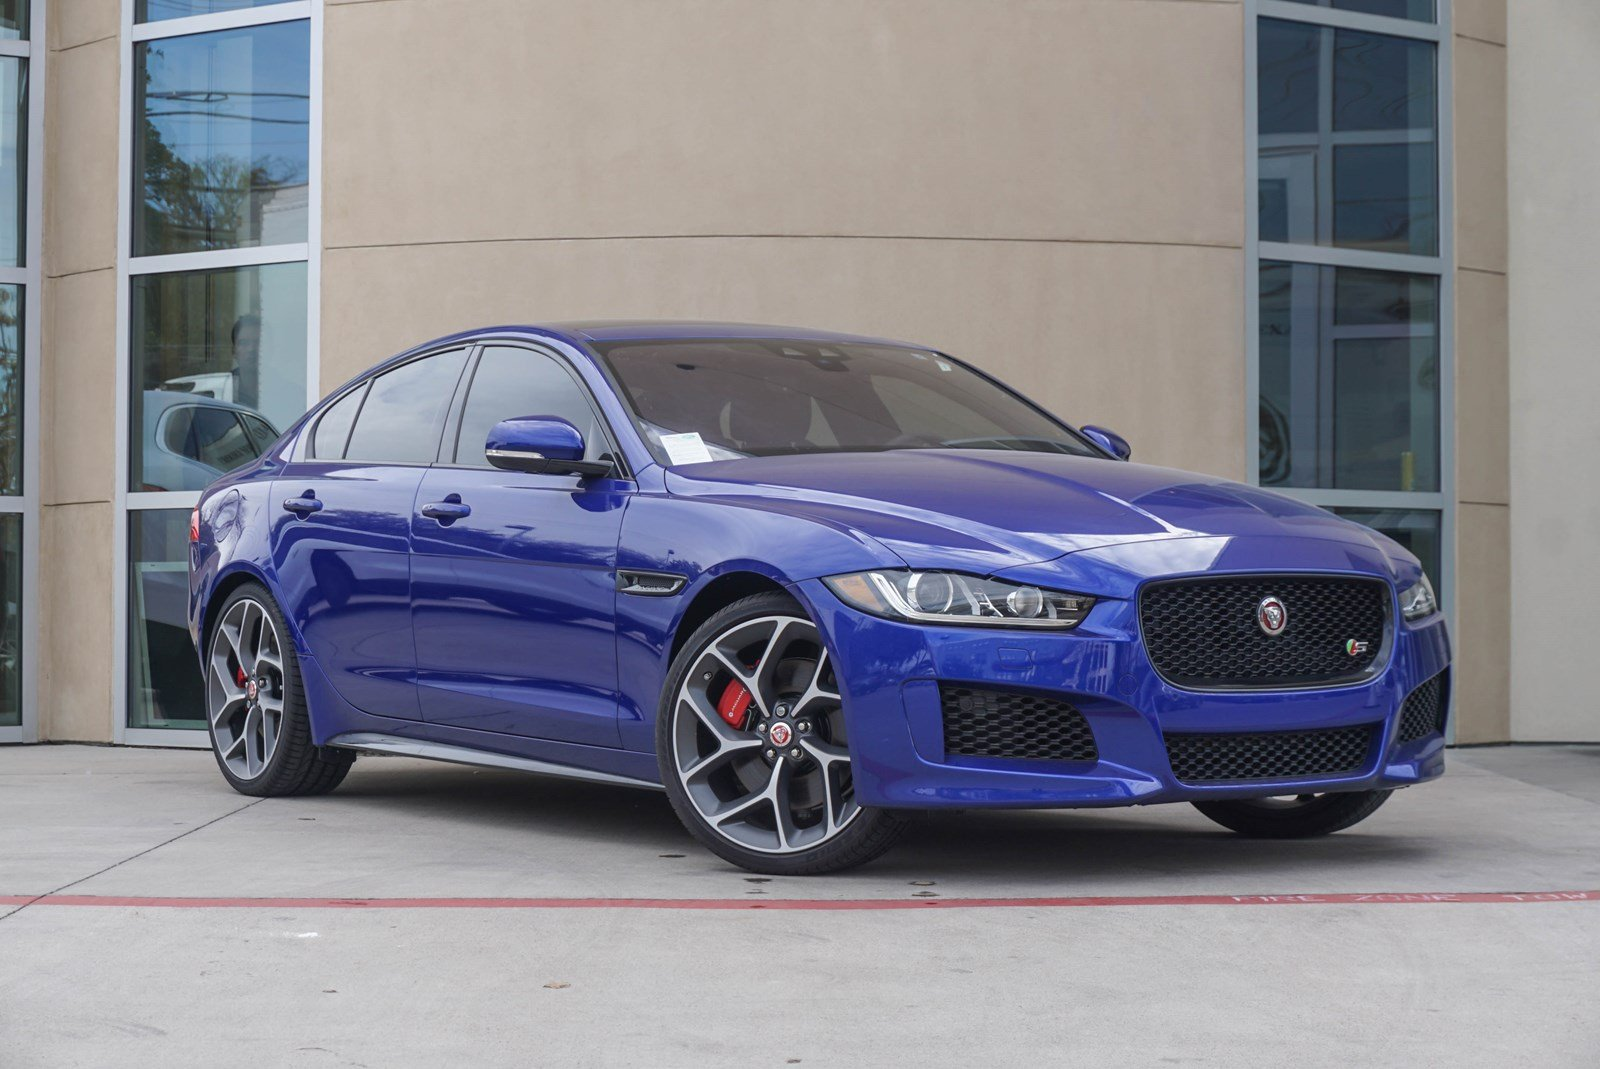 60 A 2019 Jaguar Xe Sedan Redesign and Concept